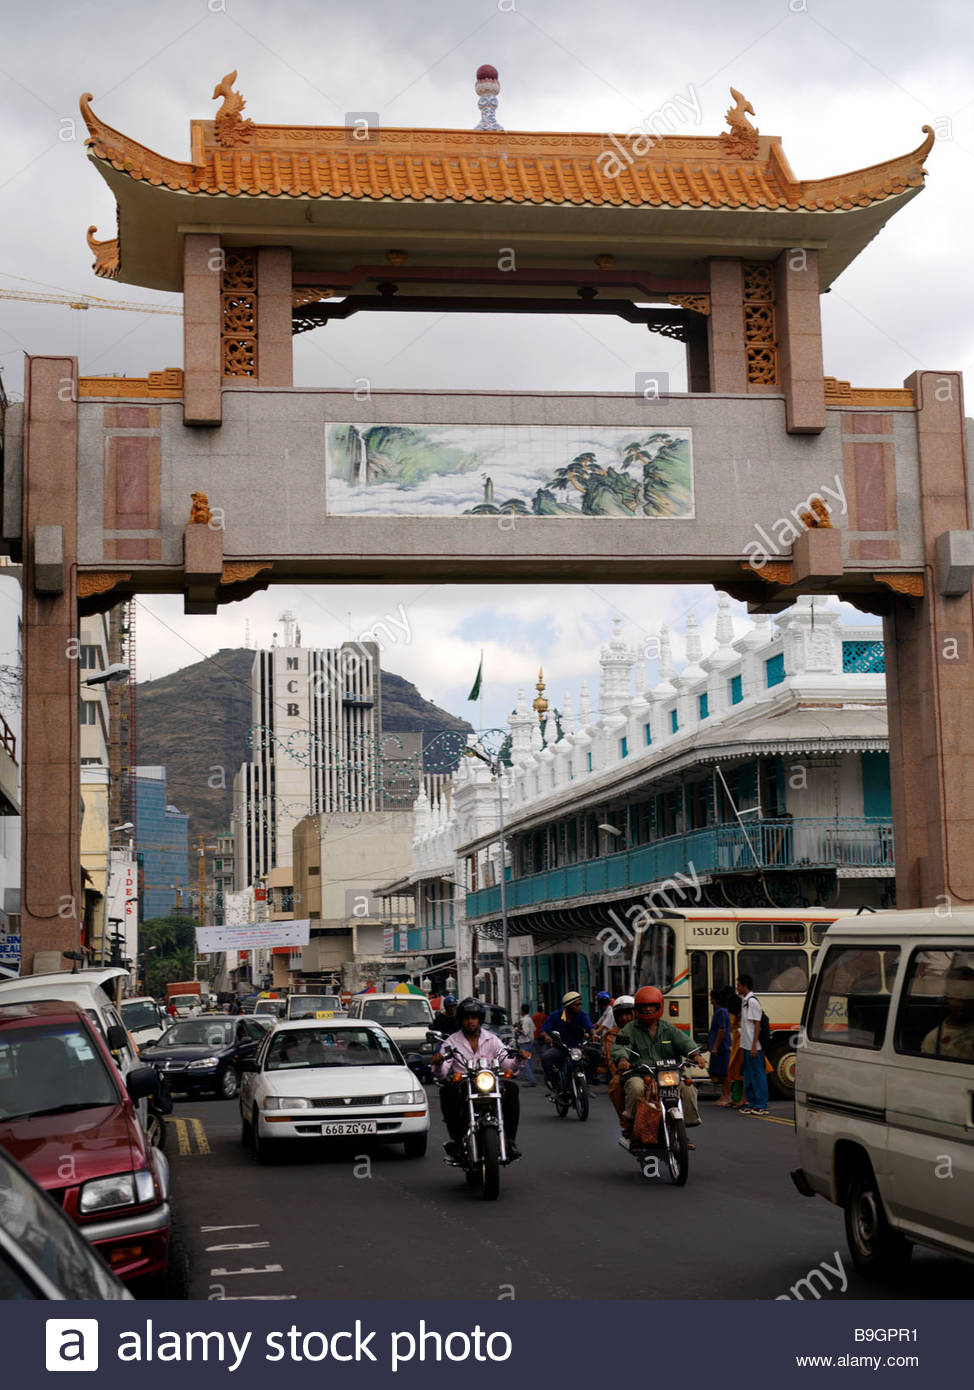 Chinatown Port Louis, Port Louis Mauritius Arch in Chinatown with Motorcyclists and ...